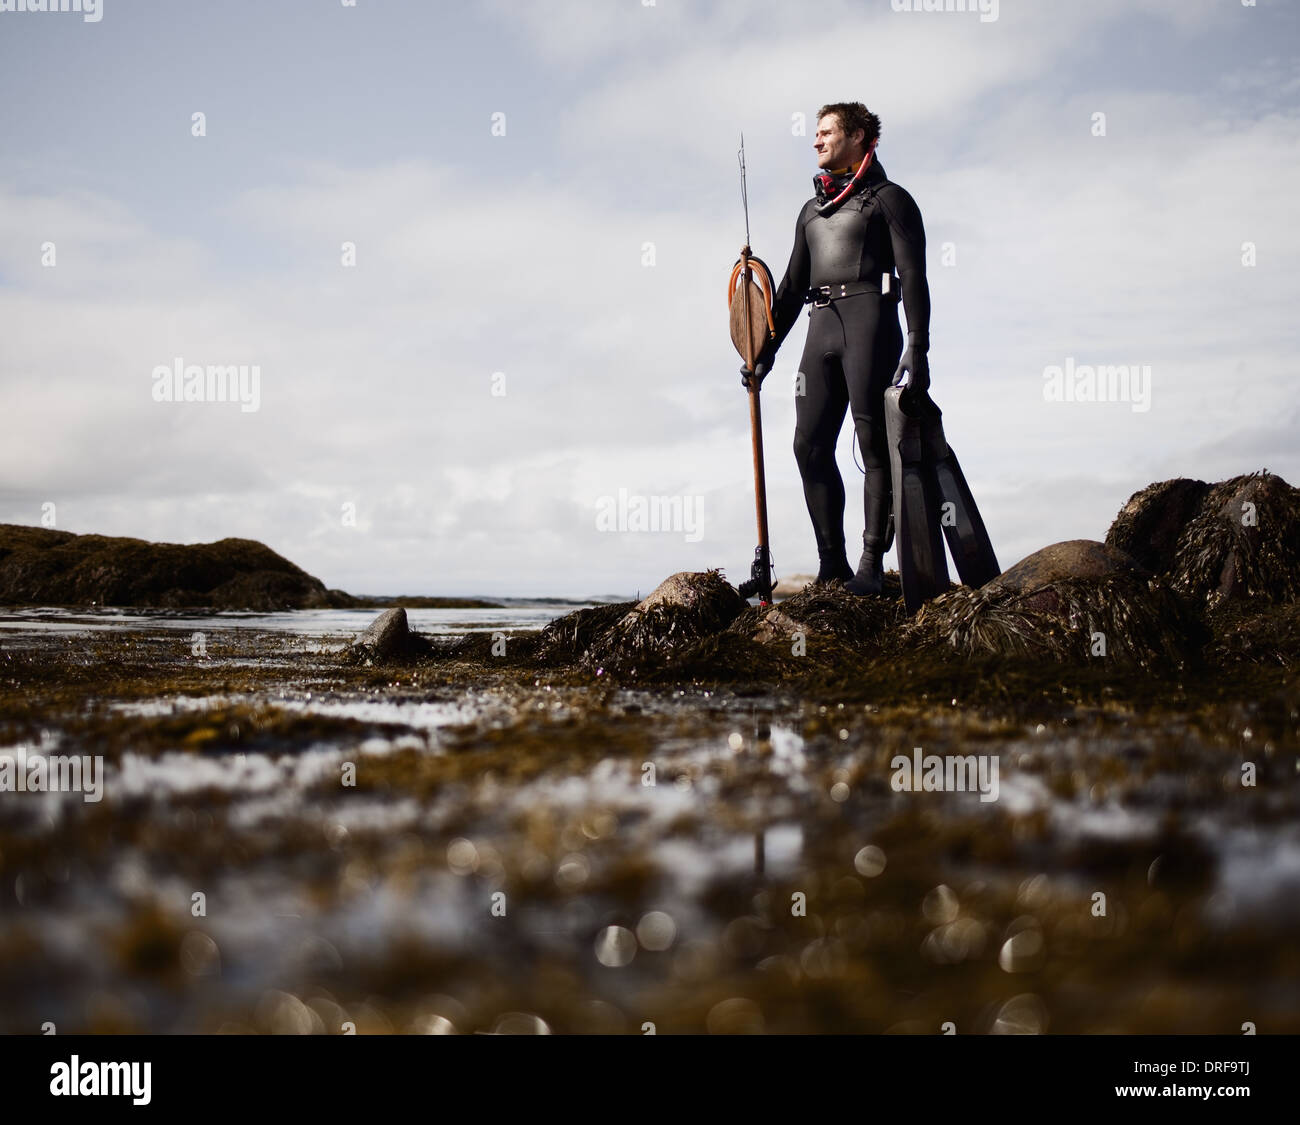 USA man in wetsuit standing on shore with large spear - Stock Image